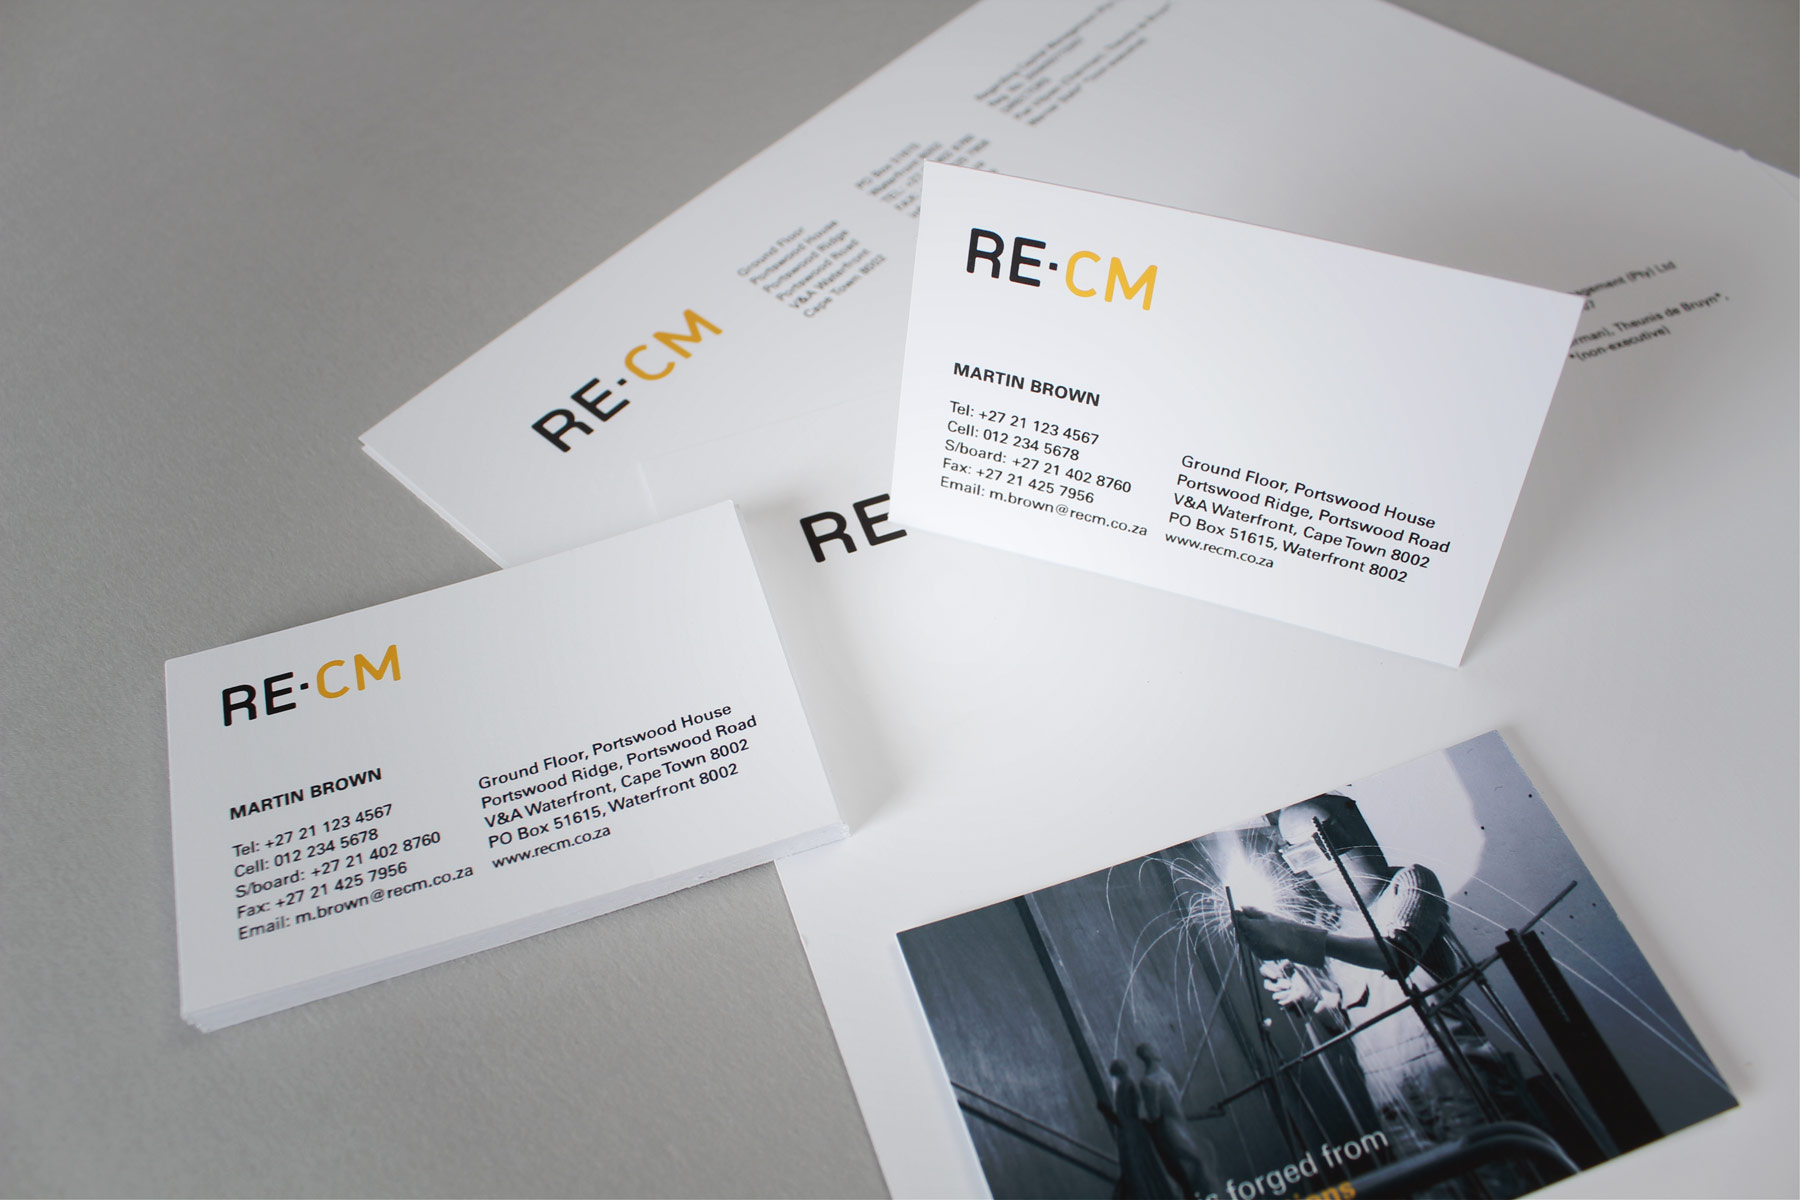 The identity extended to all facets of the business - Using the simple logotype, combined with a clean layout style and supported by the brand visual metaphor.